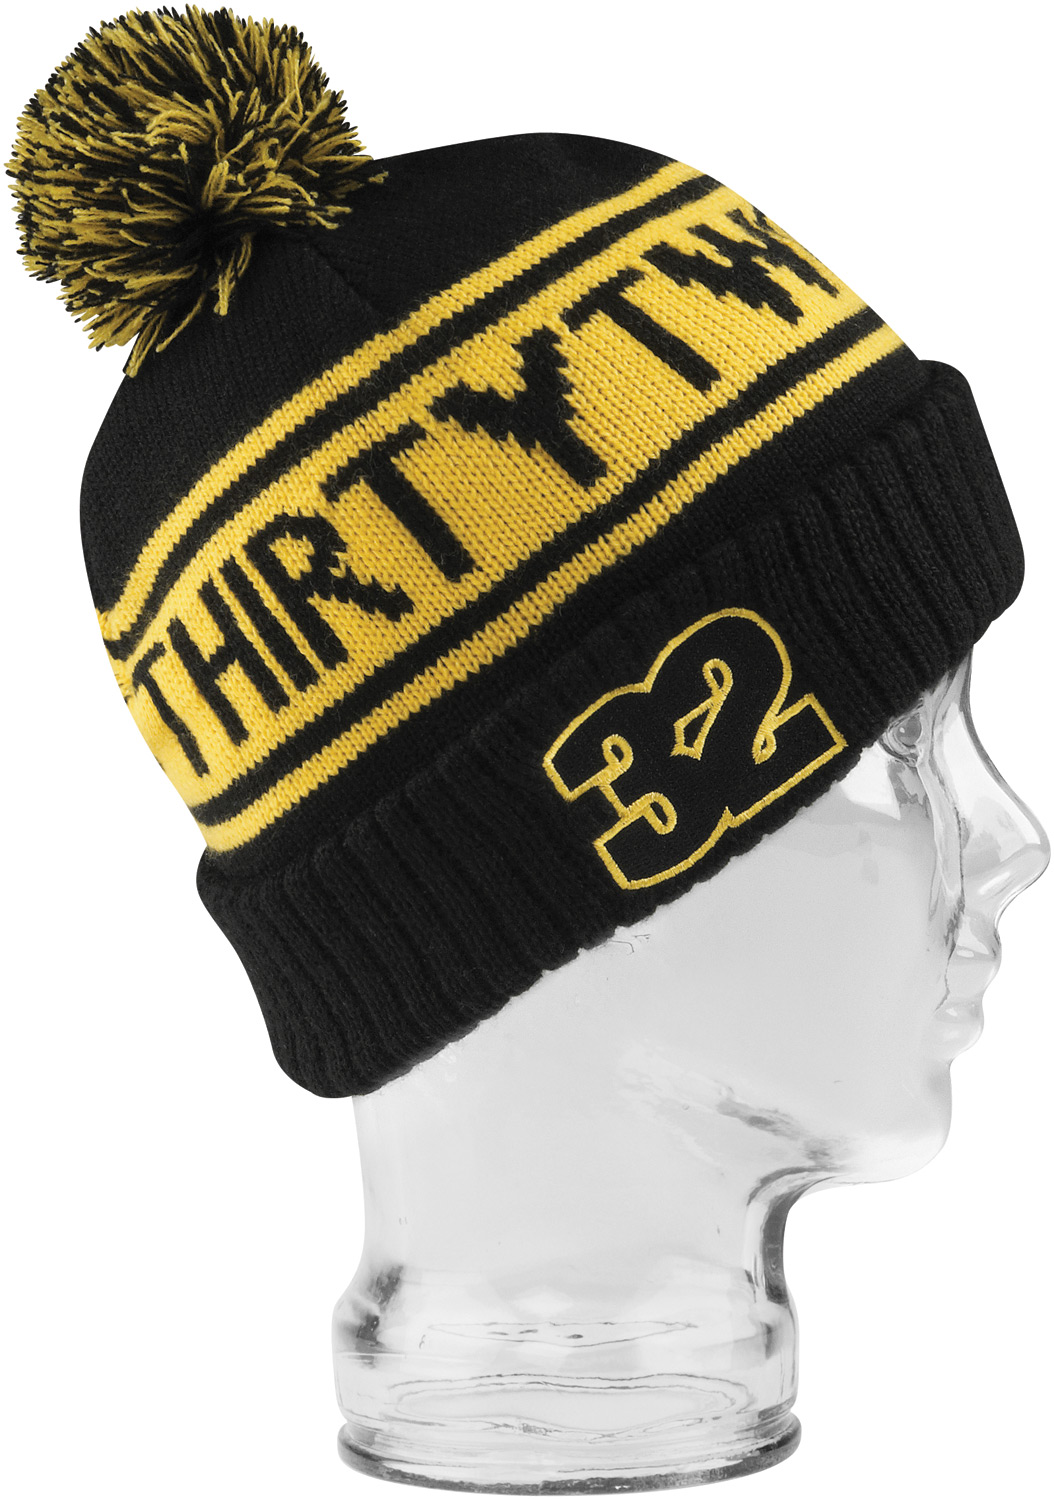 Key Features of the 32 - Thirty Two Peeping Pom Beanie: 100% acrylic retro cuff beanie with jacquard logo - $19.95